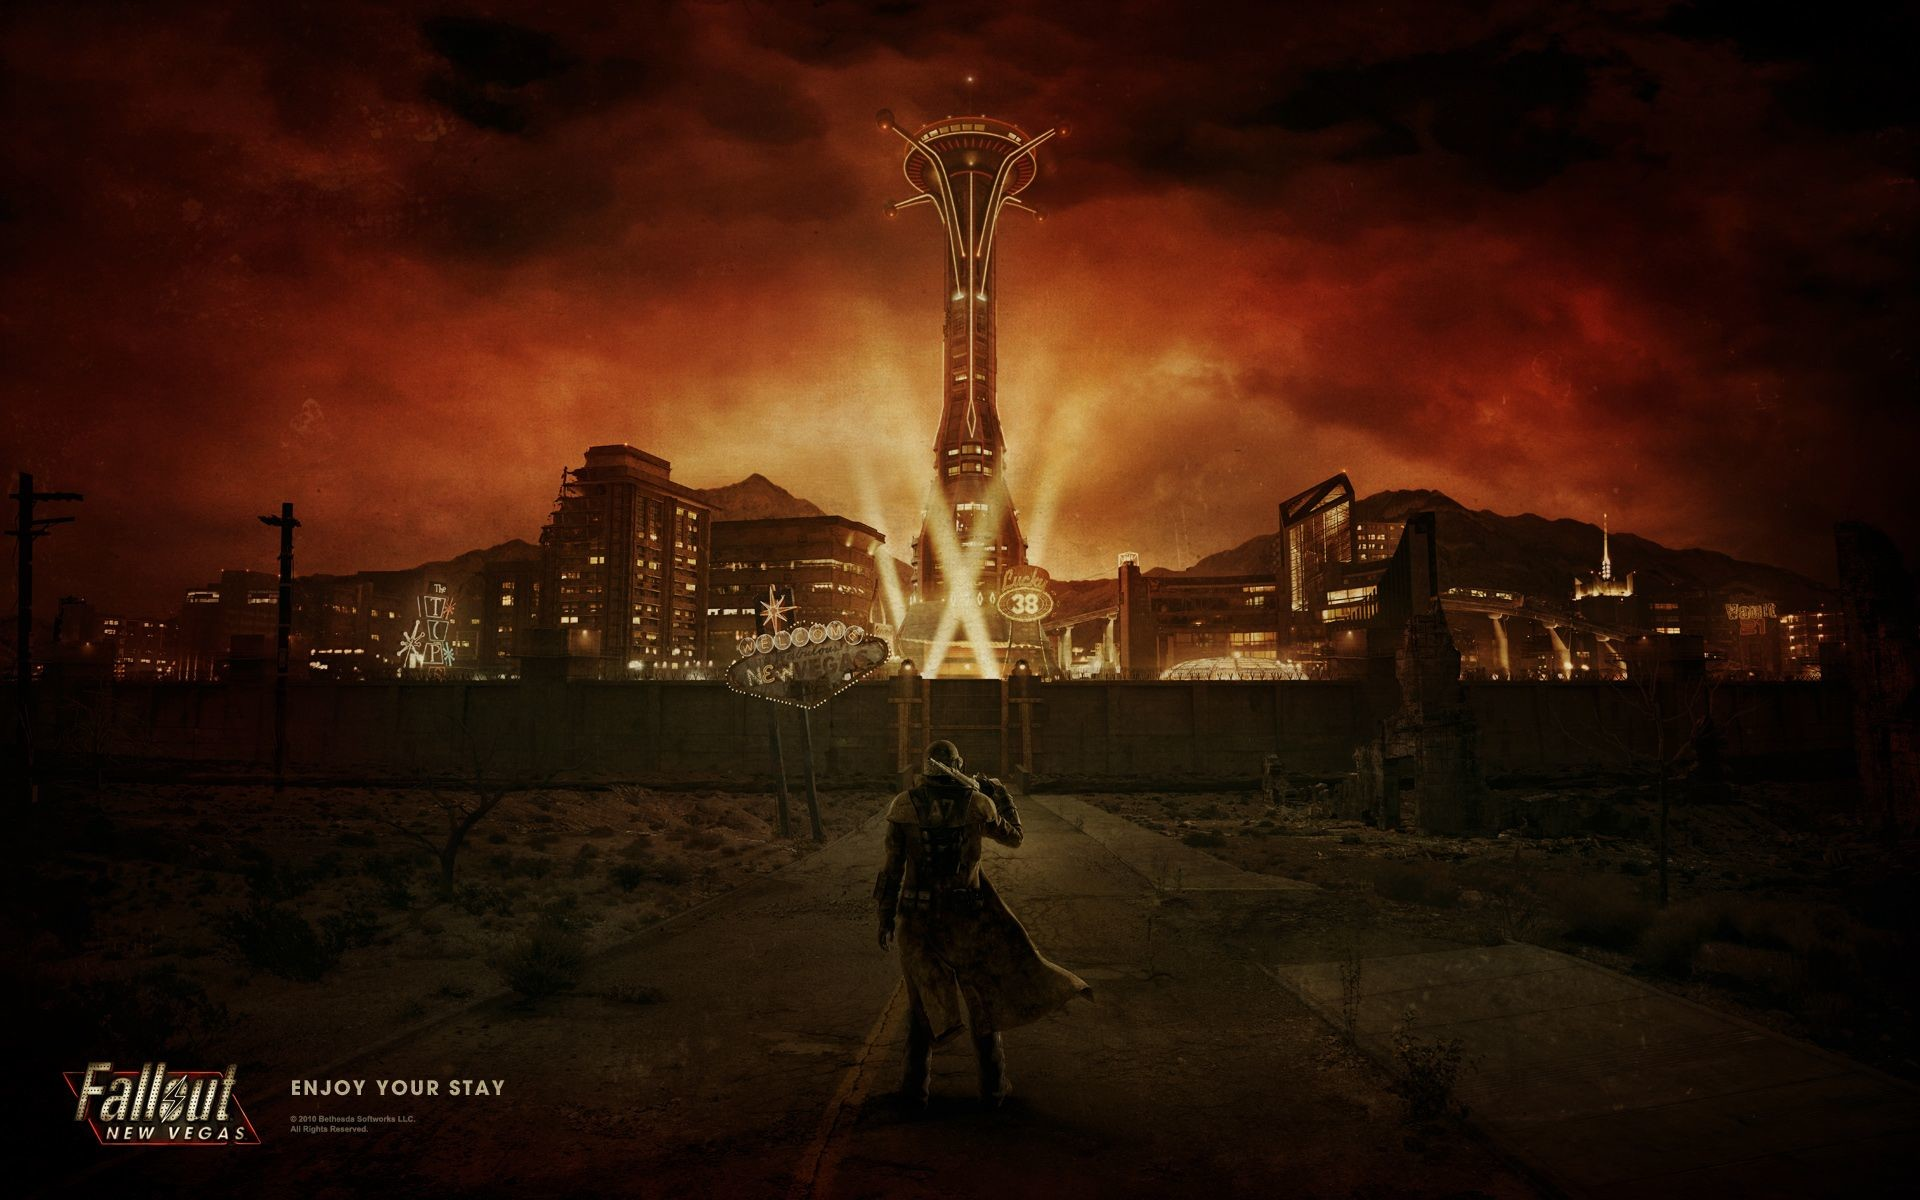 Fallout New Vegas Wallpaper 1080p 82 Images